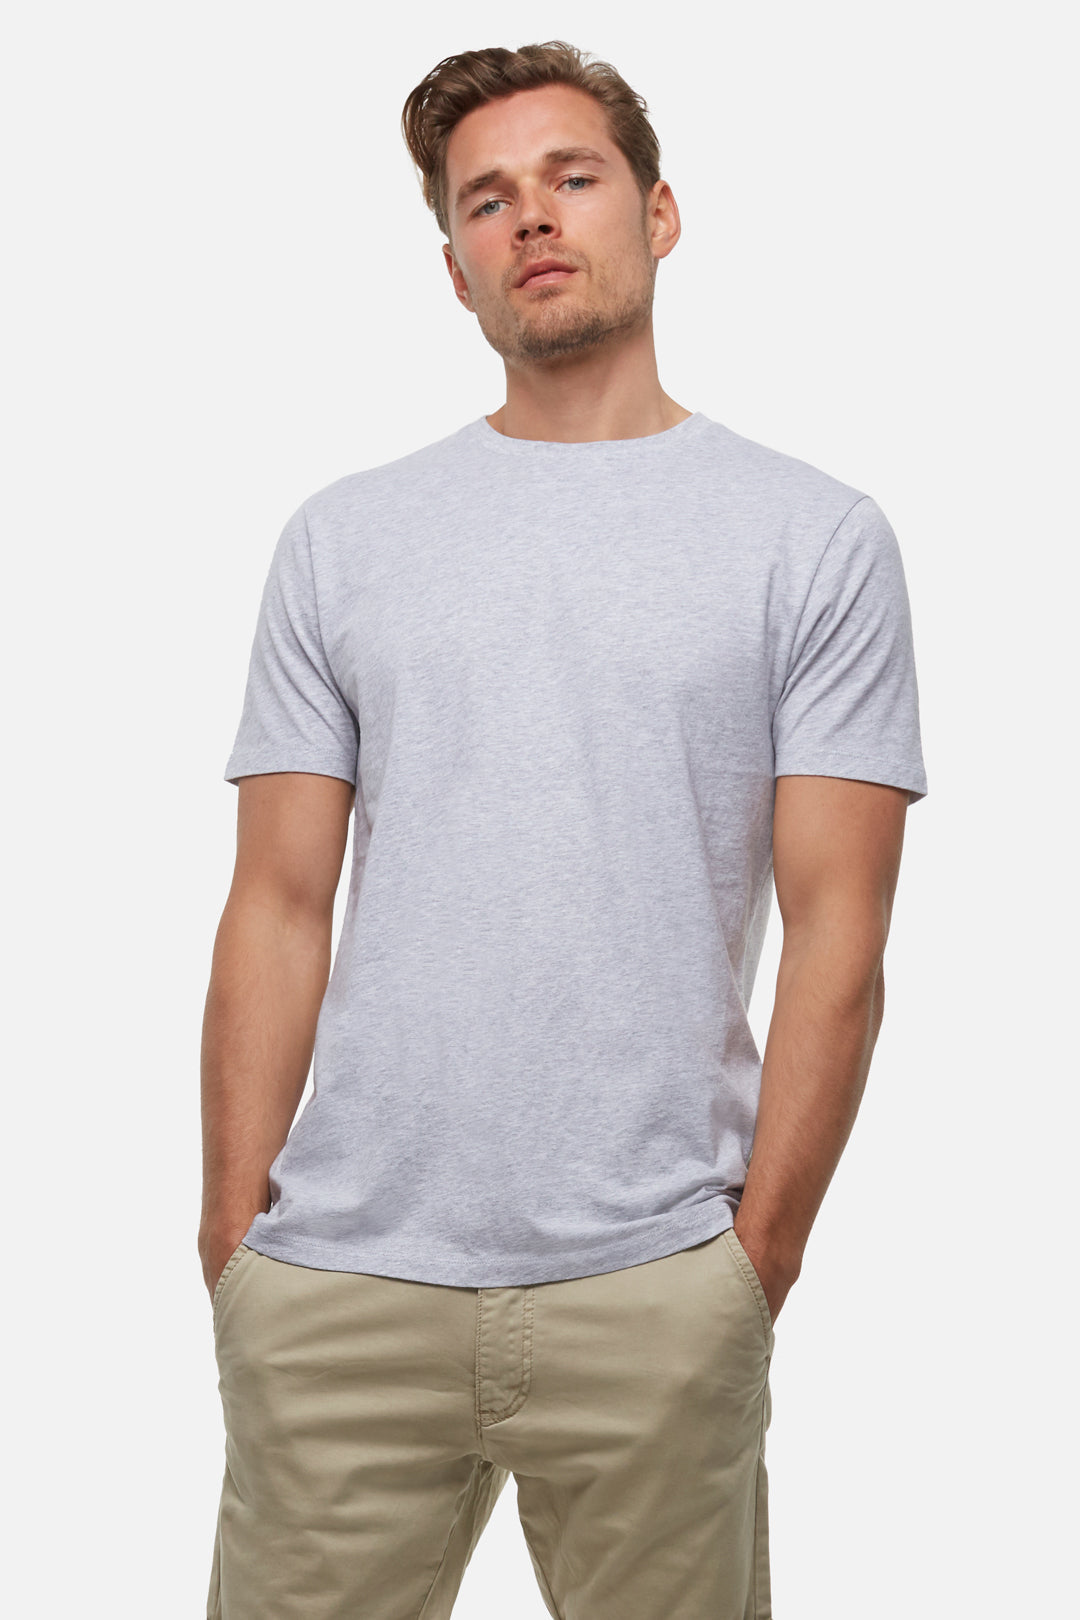 The New Basic Crew Tee - Light Grey Marle